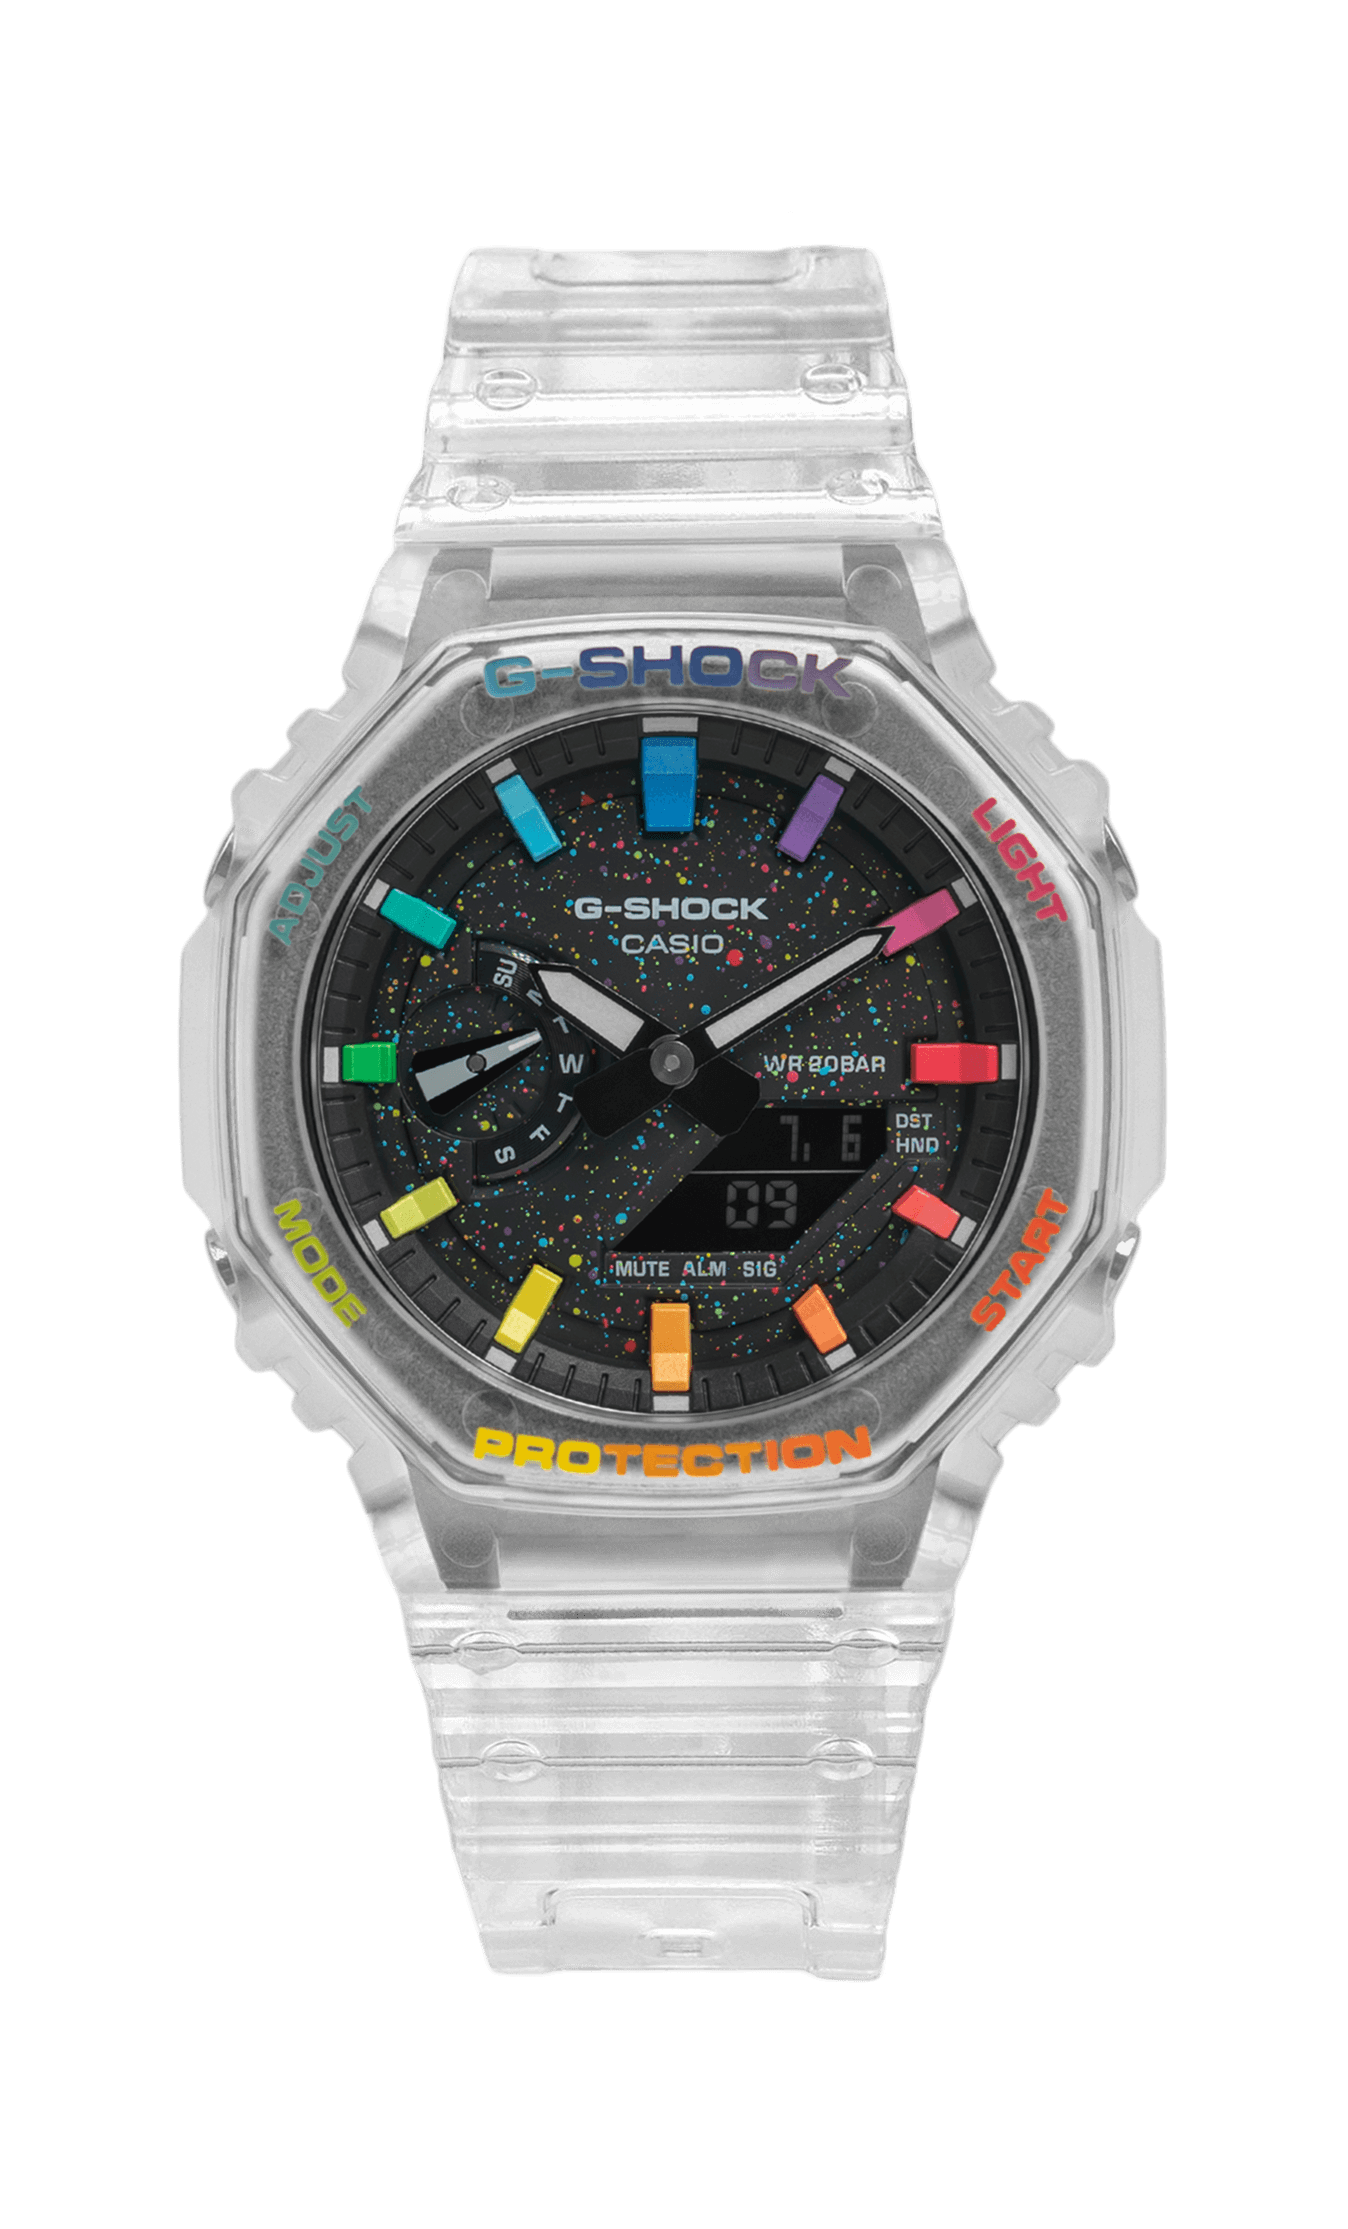 IFLW G-Shock GA-2100SKE-7AER CasiOak Crystal Jellyfish Limited Edition watch hand-painted by the Dial Artist